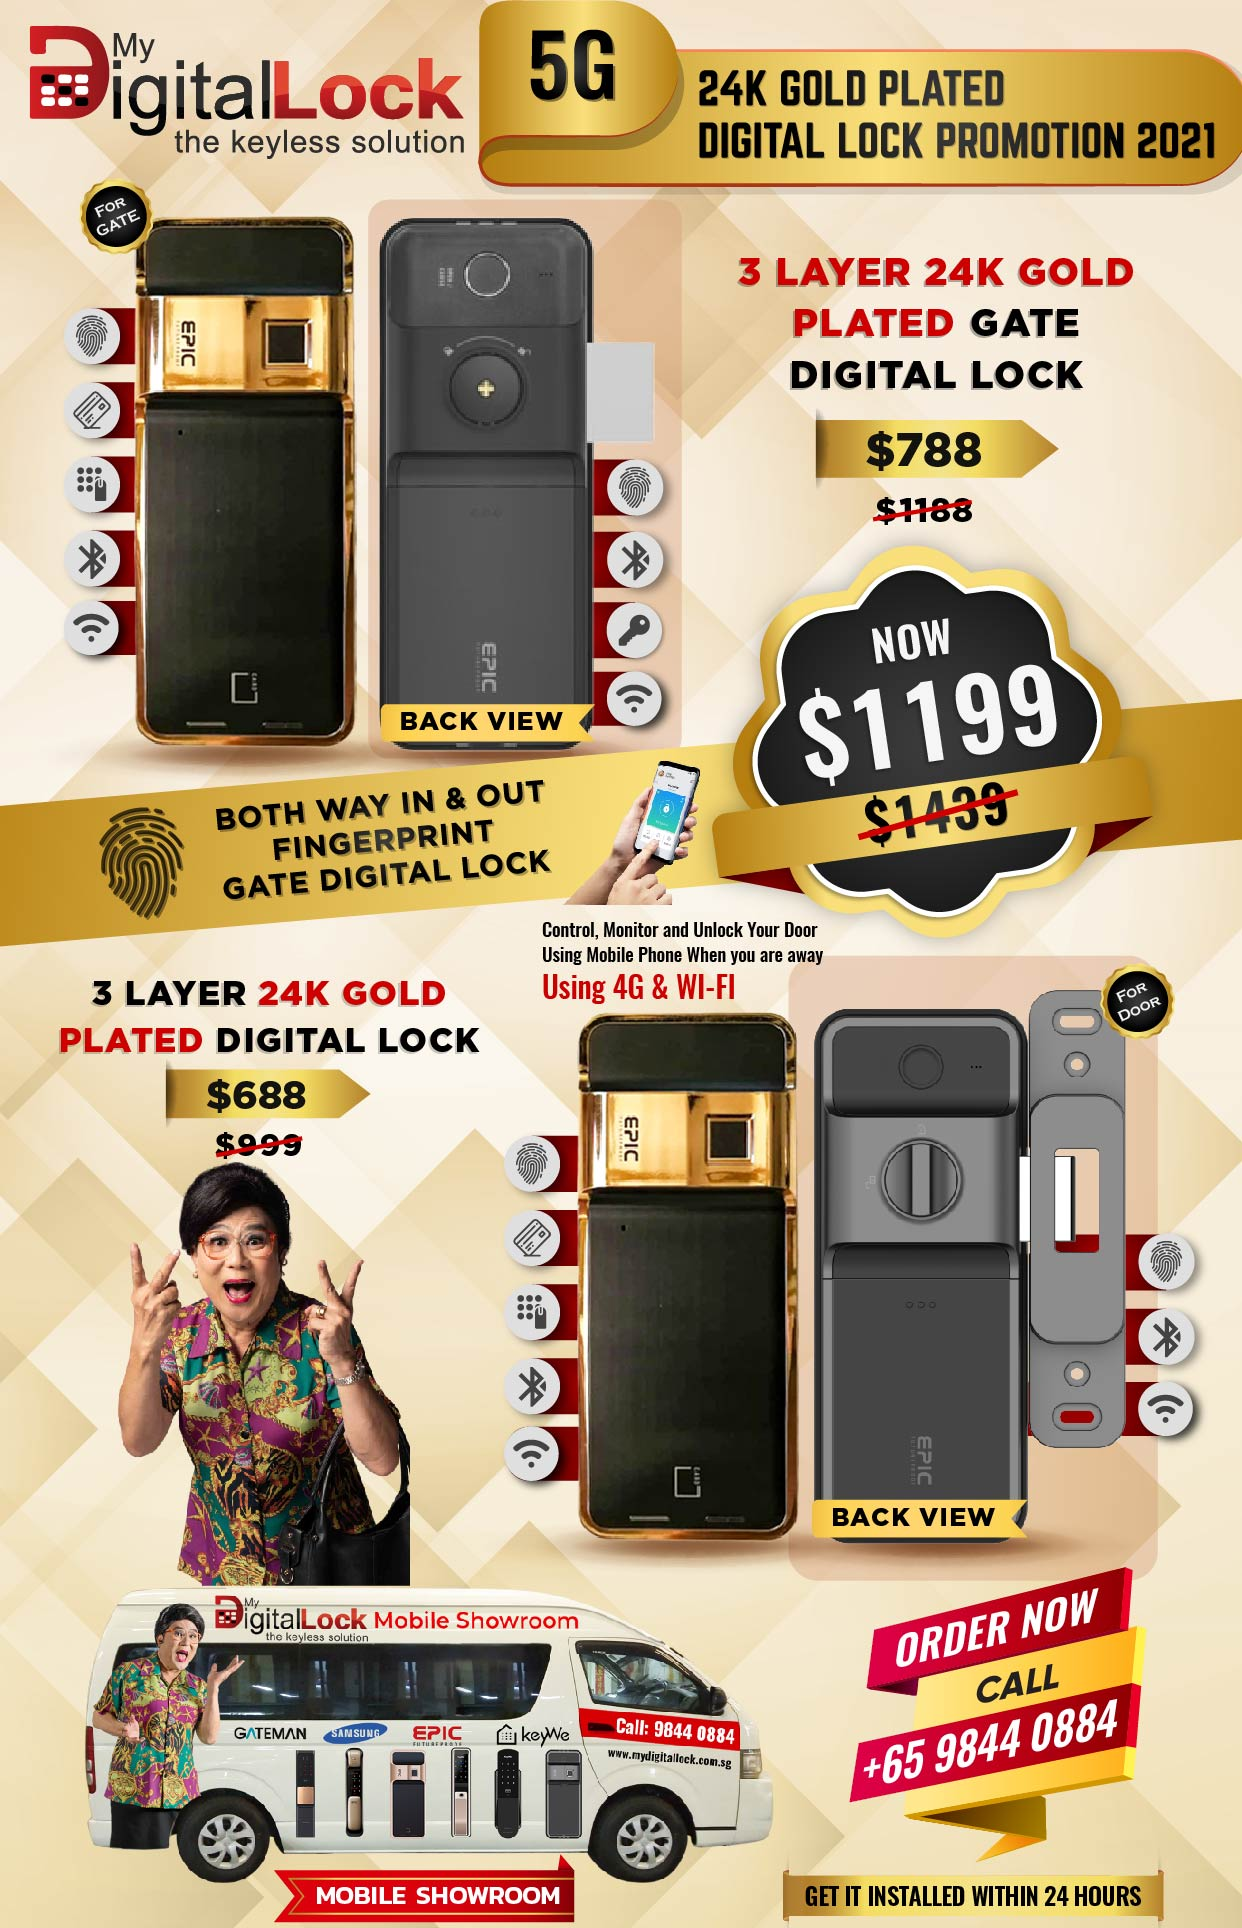 5G 24K Gold Plated Digital Lock Promotion 2021